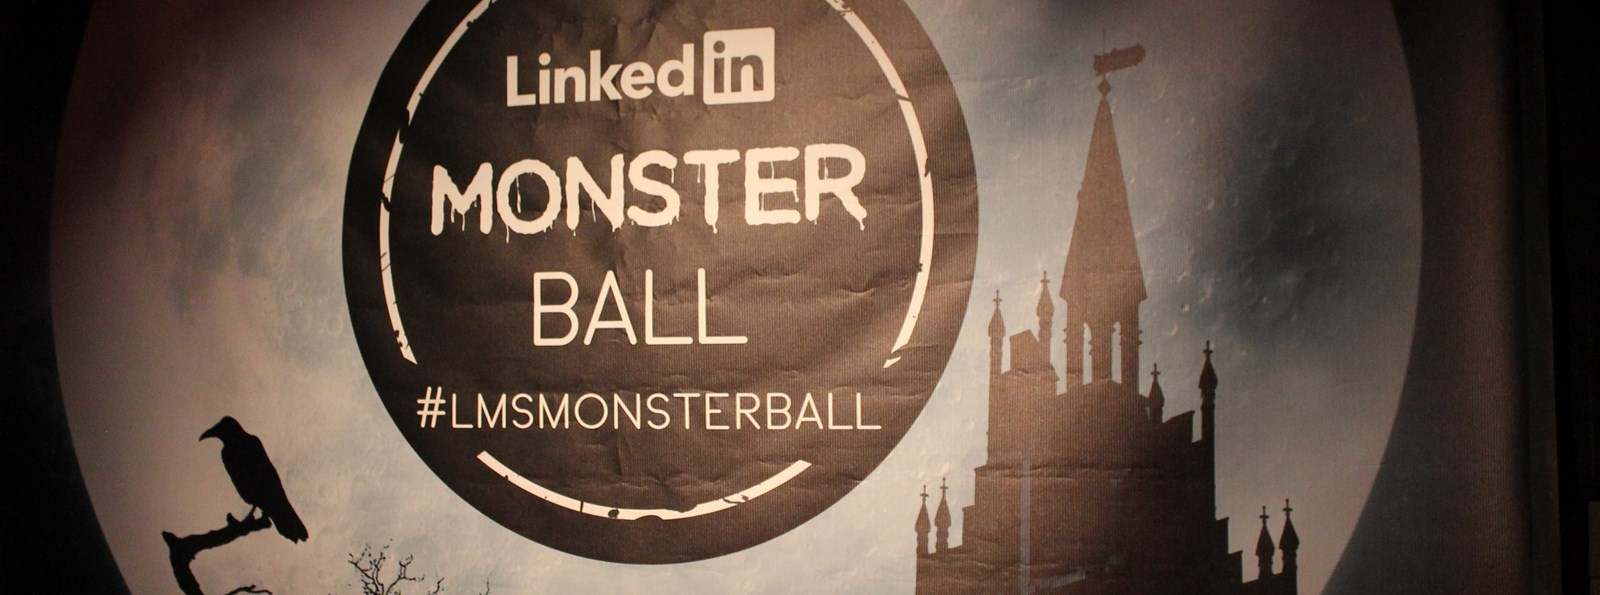 An Eerie event for LinkedIn's Halloween Monster Ball